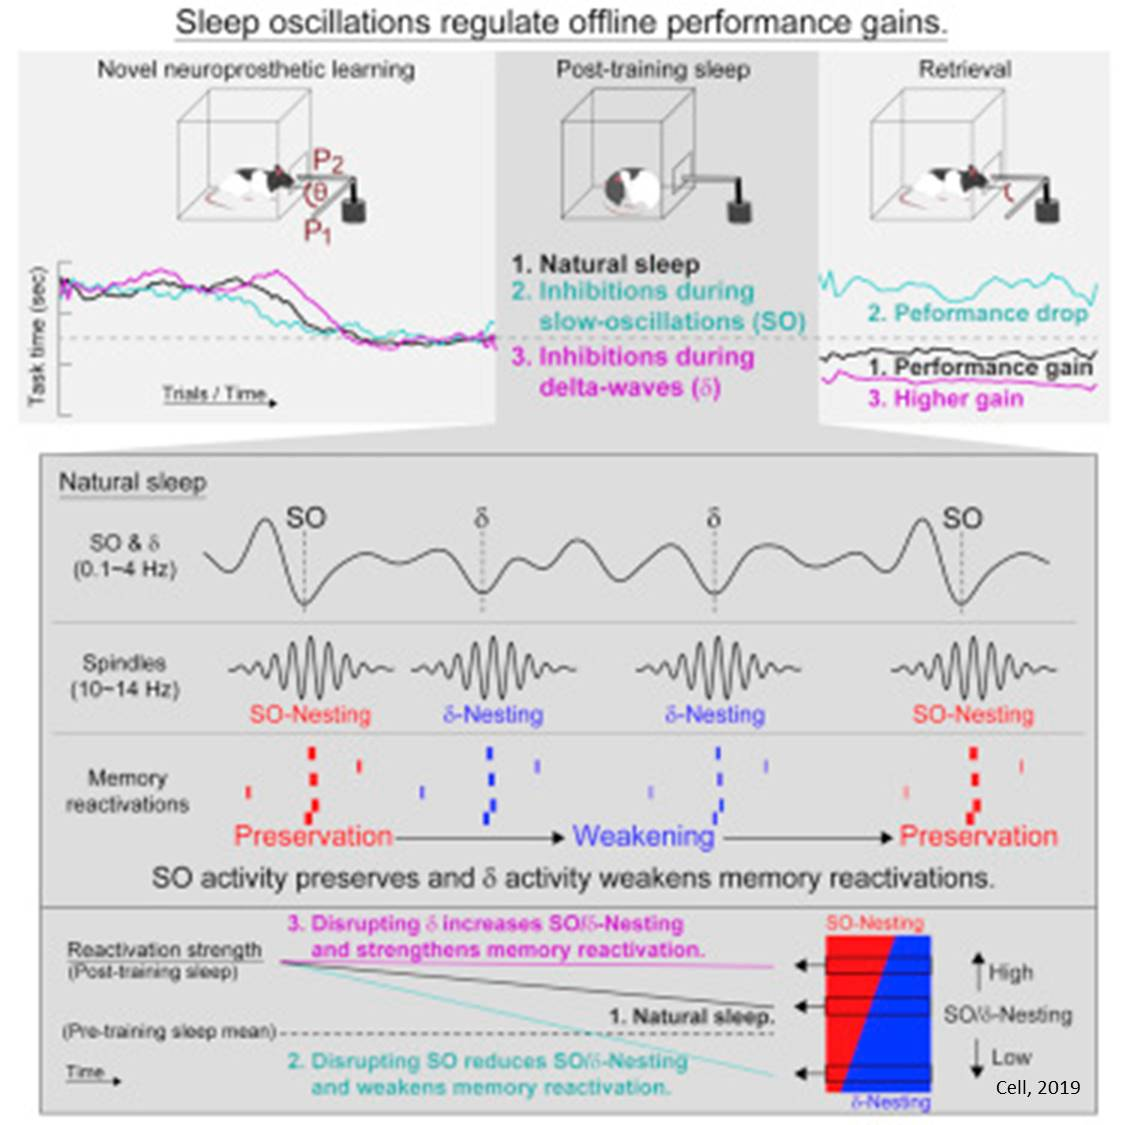 Manipulating brain waves in sleeping to enhance forgetting or learning